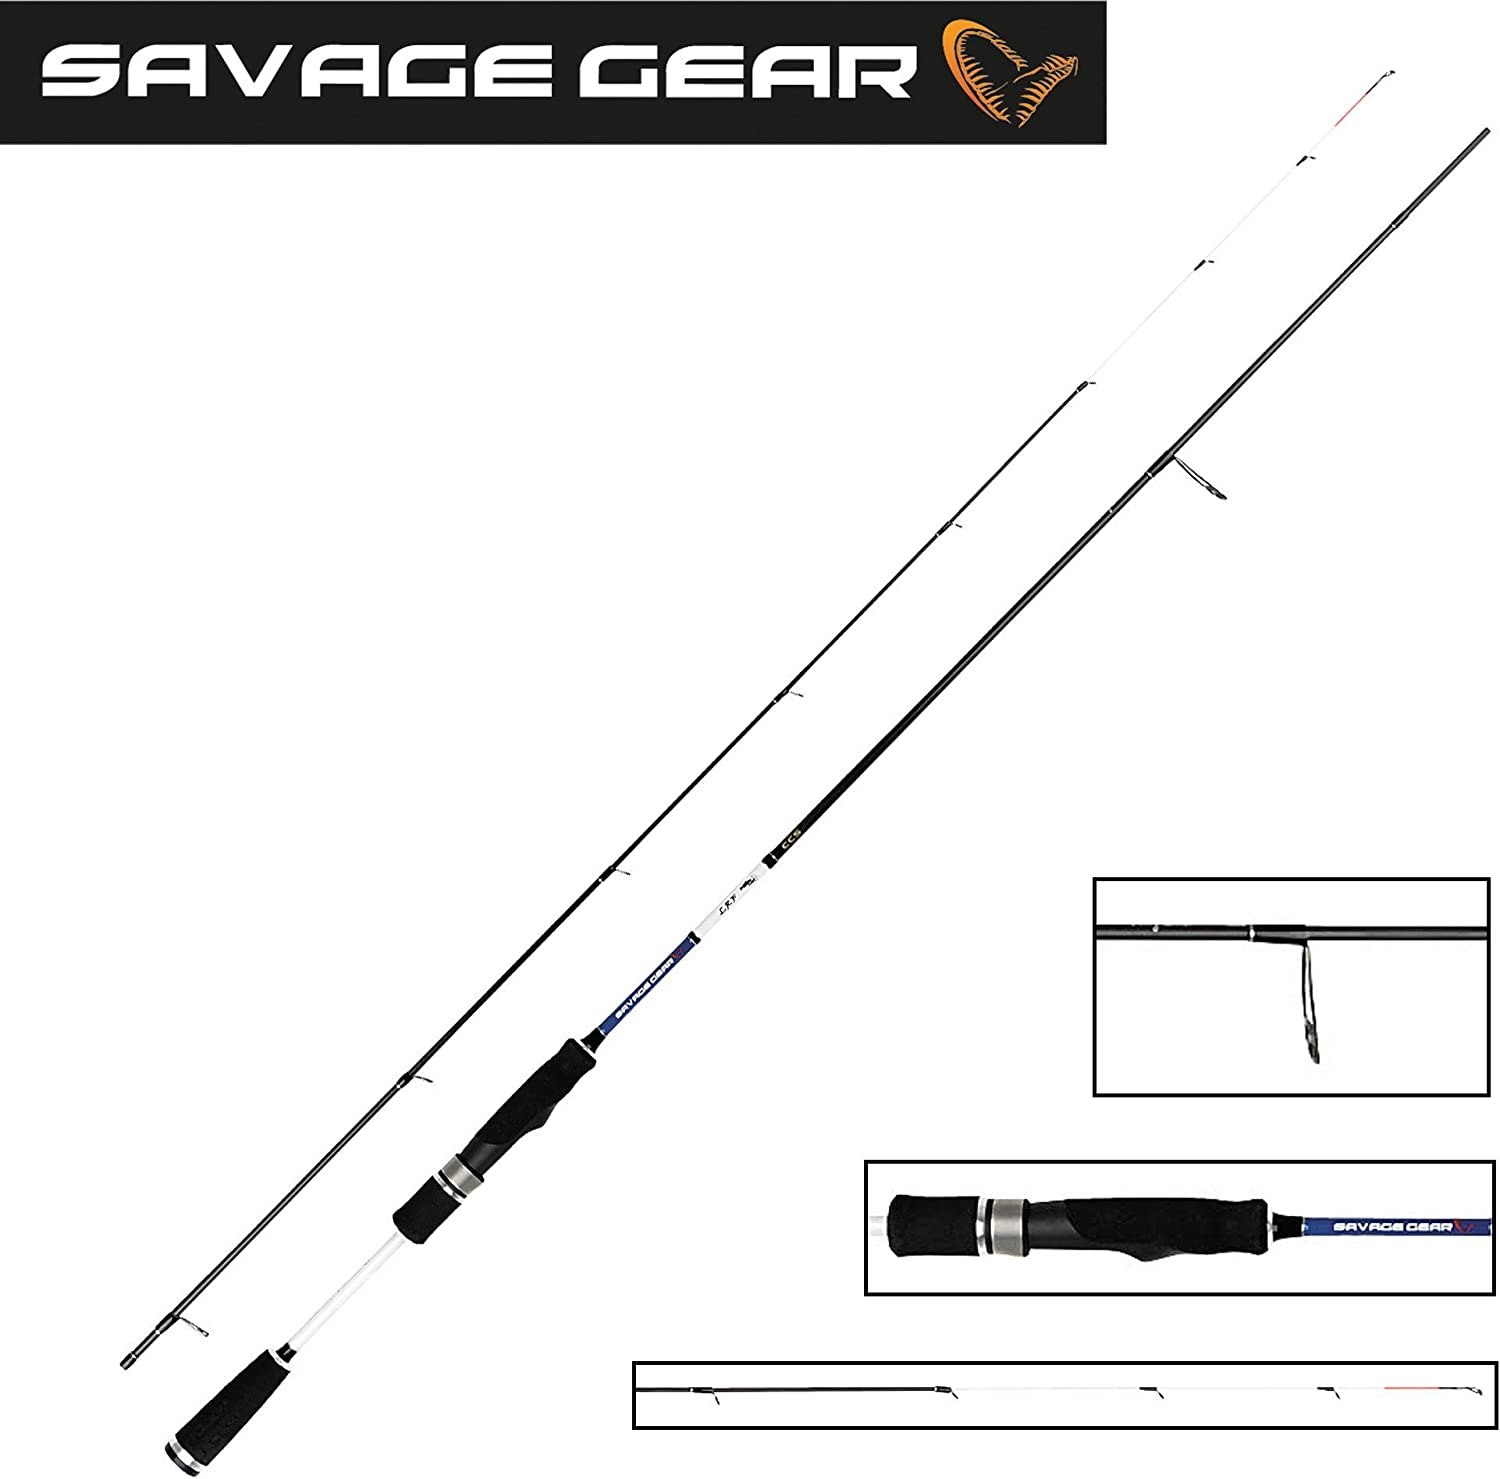 Savage Gear CAÑA Spinning LRF CCS - Light Range Fishing Rods - 120 ...